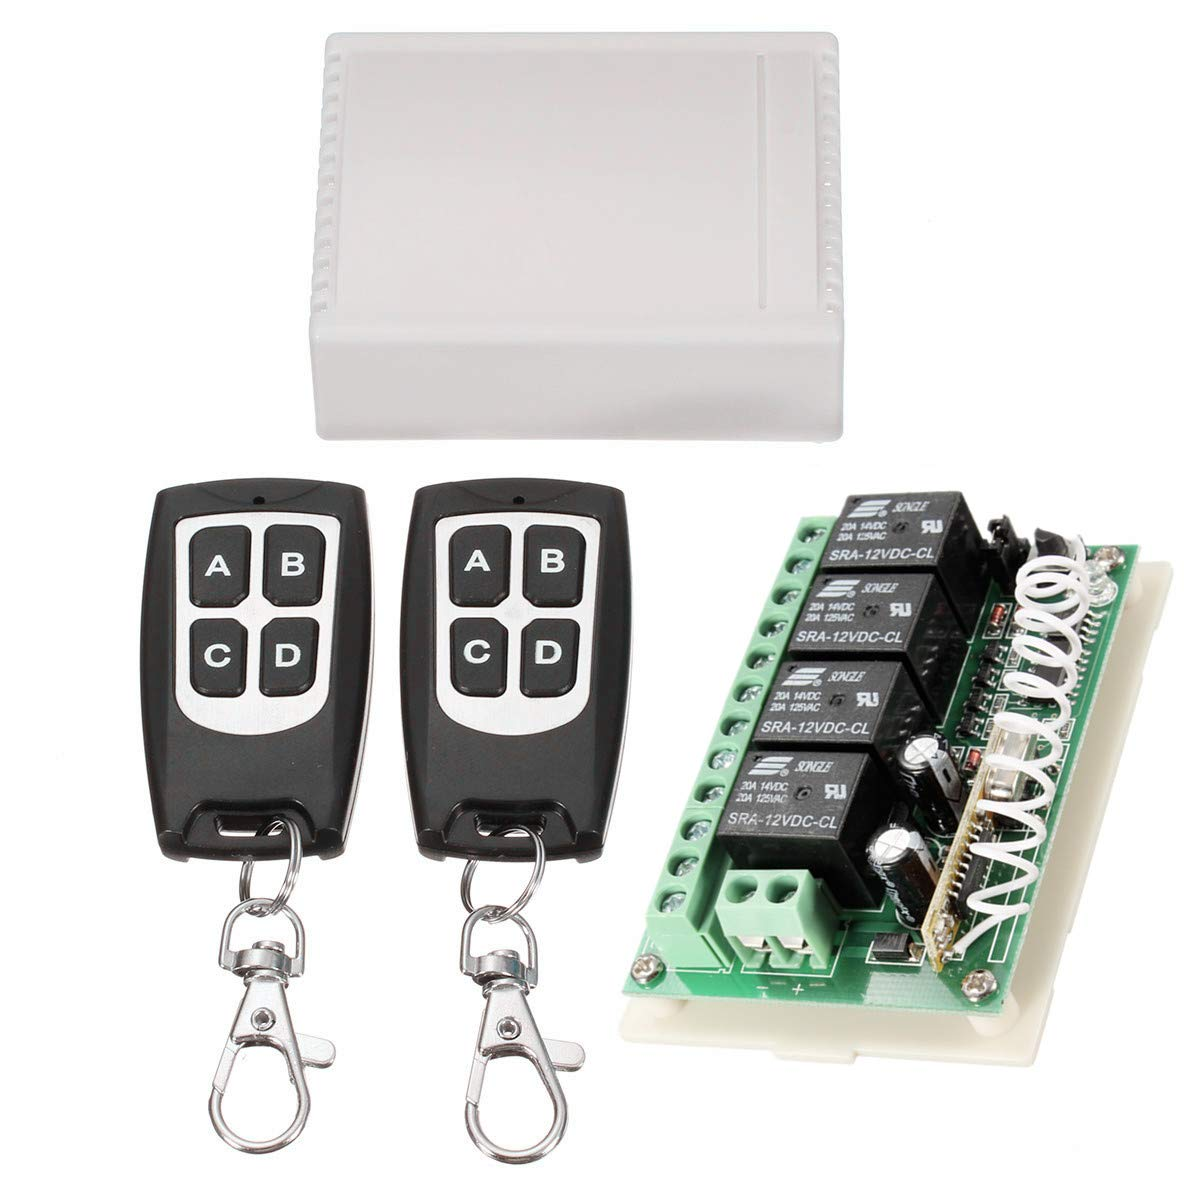 Insma 433mhz Wireless Rf Switch Long Range Dc 12v 4ch Remote Control Circuit Board Garage Door 315 Channel Dc12v Relay Receiver Module Transmitter Toggle